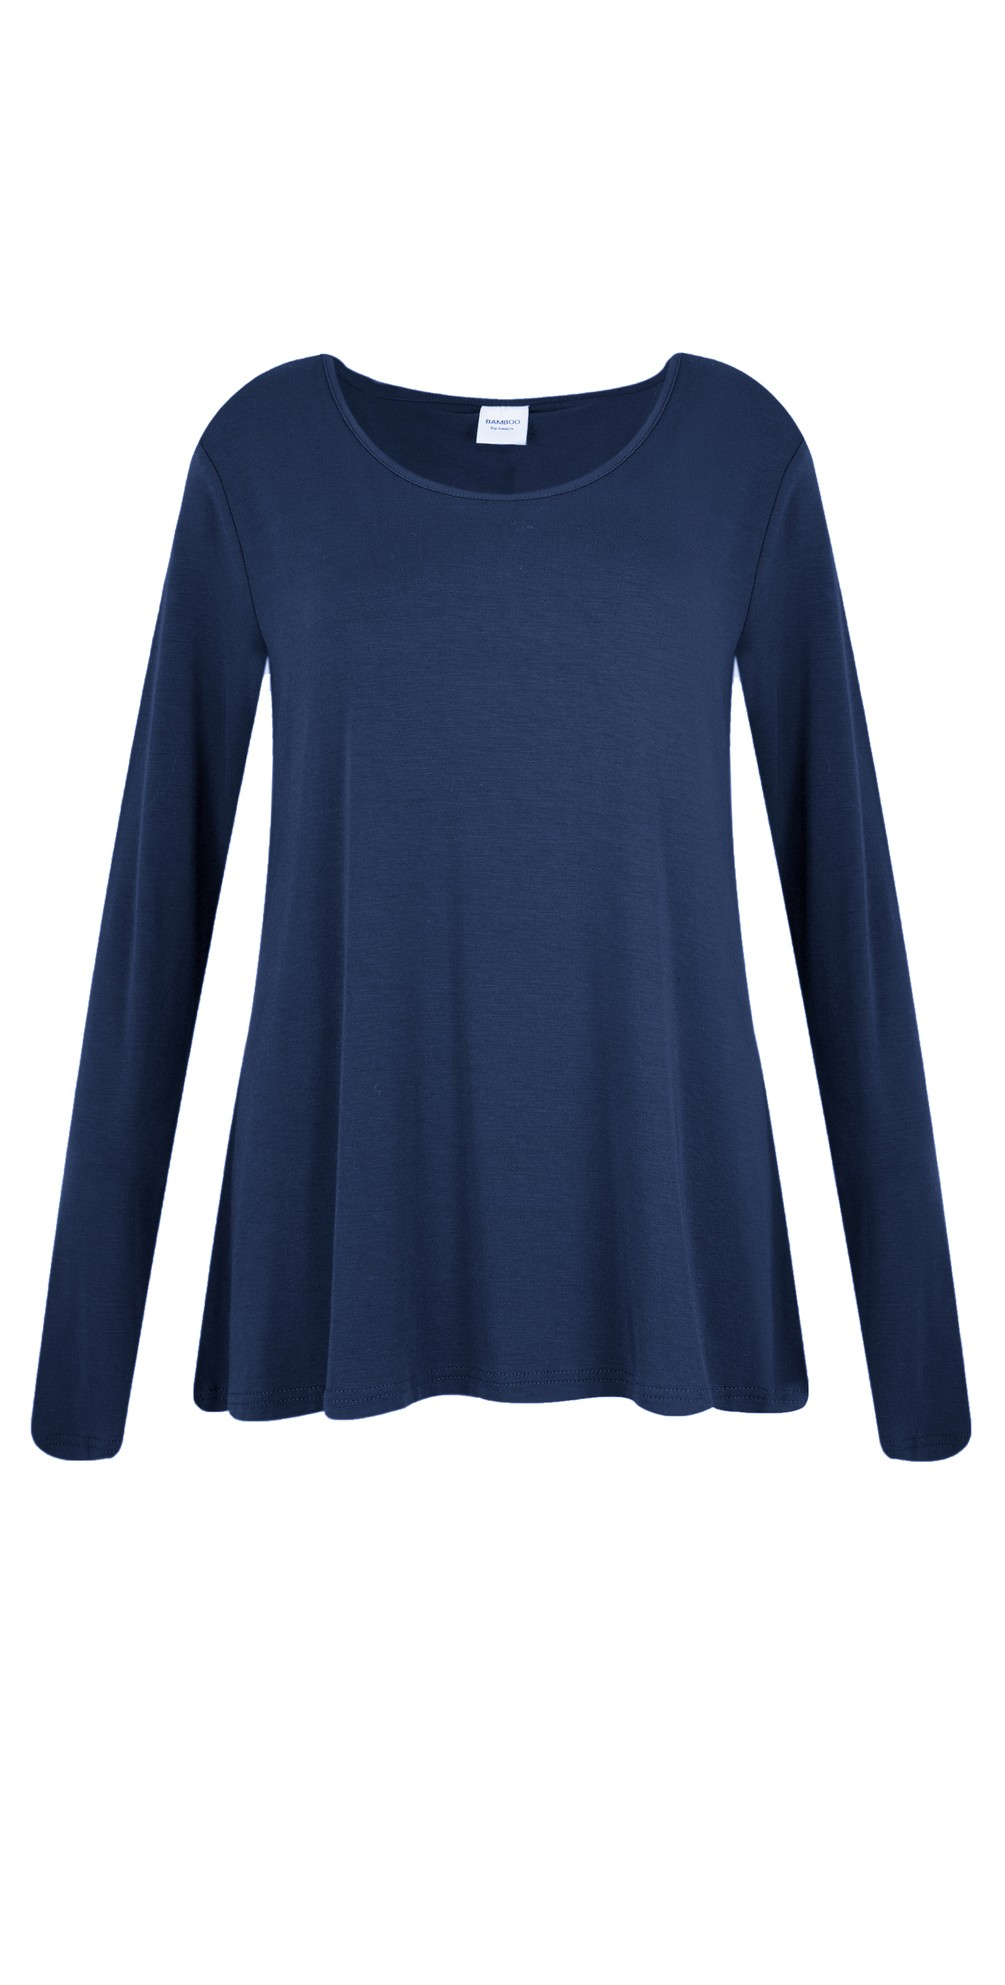 Heidi A-Shape Round Neck Bamboo Jersey Top main image